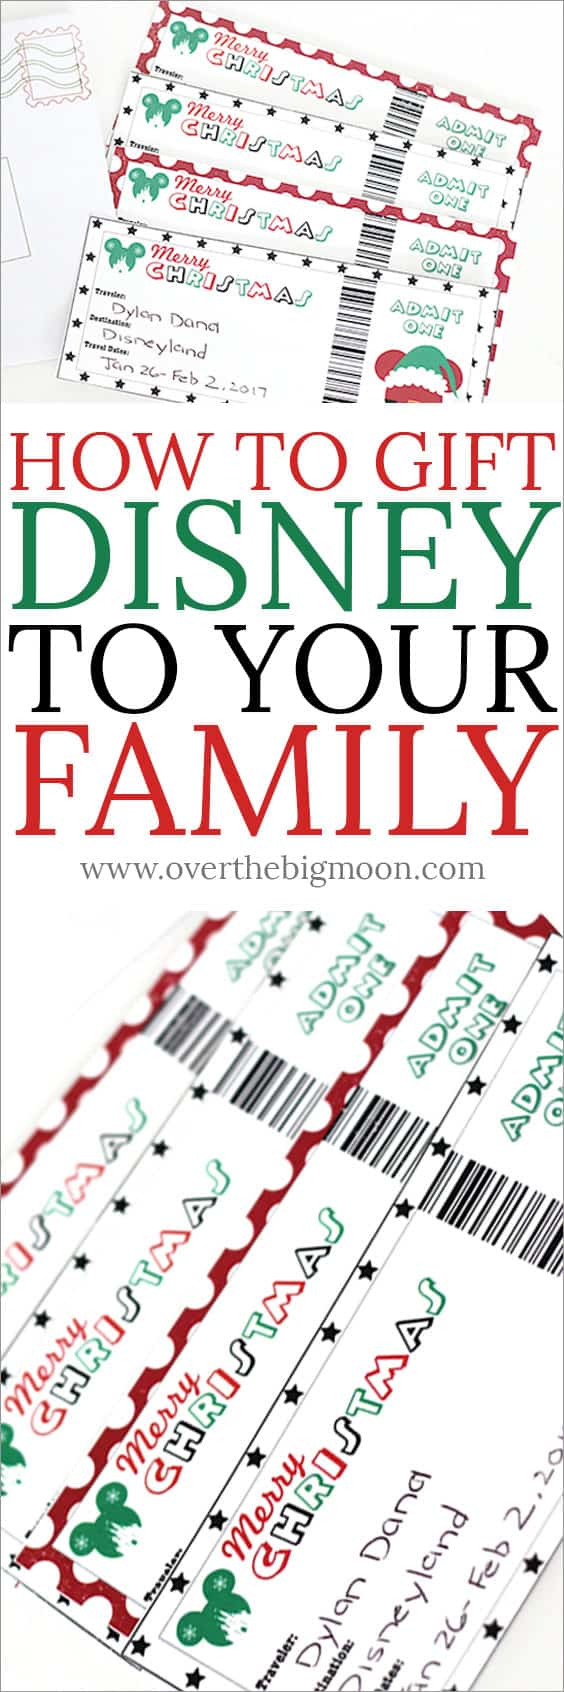 How to Gift Disneyland or Disneyworld to your Family! These printable tickets are fun and easy! From overthebigmoon.com!